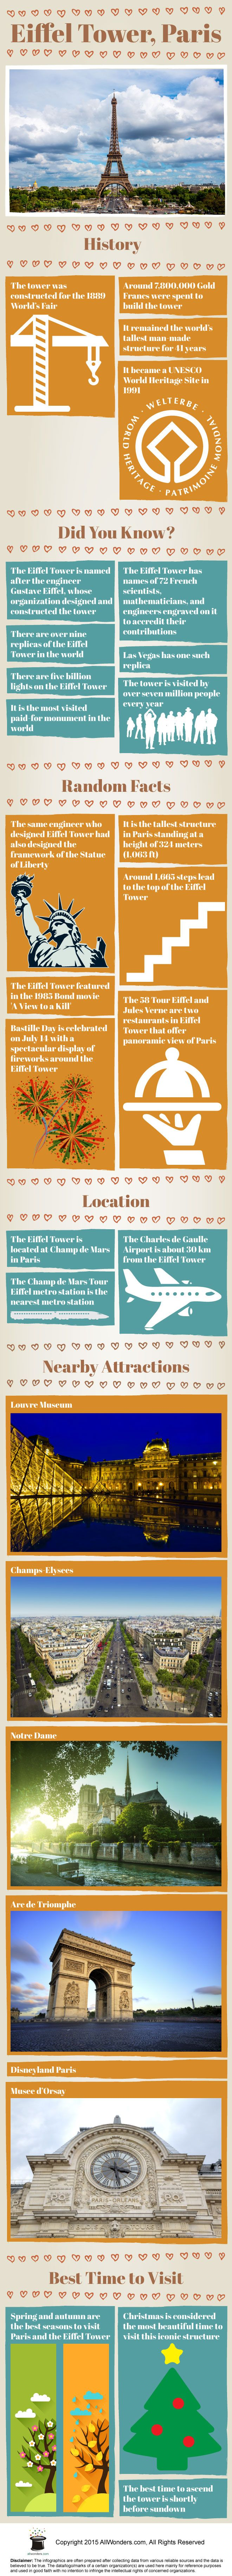 Infographic showing facts and information about Eiffel Tower. Know about its location, best time to visit, nearby attractions and more using this infographic.